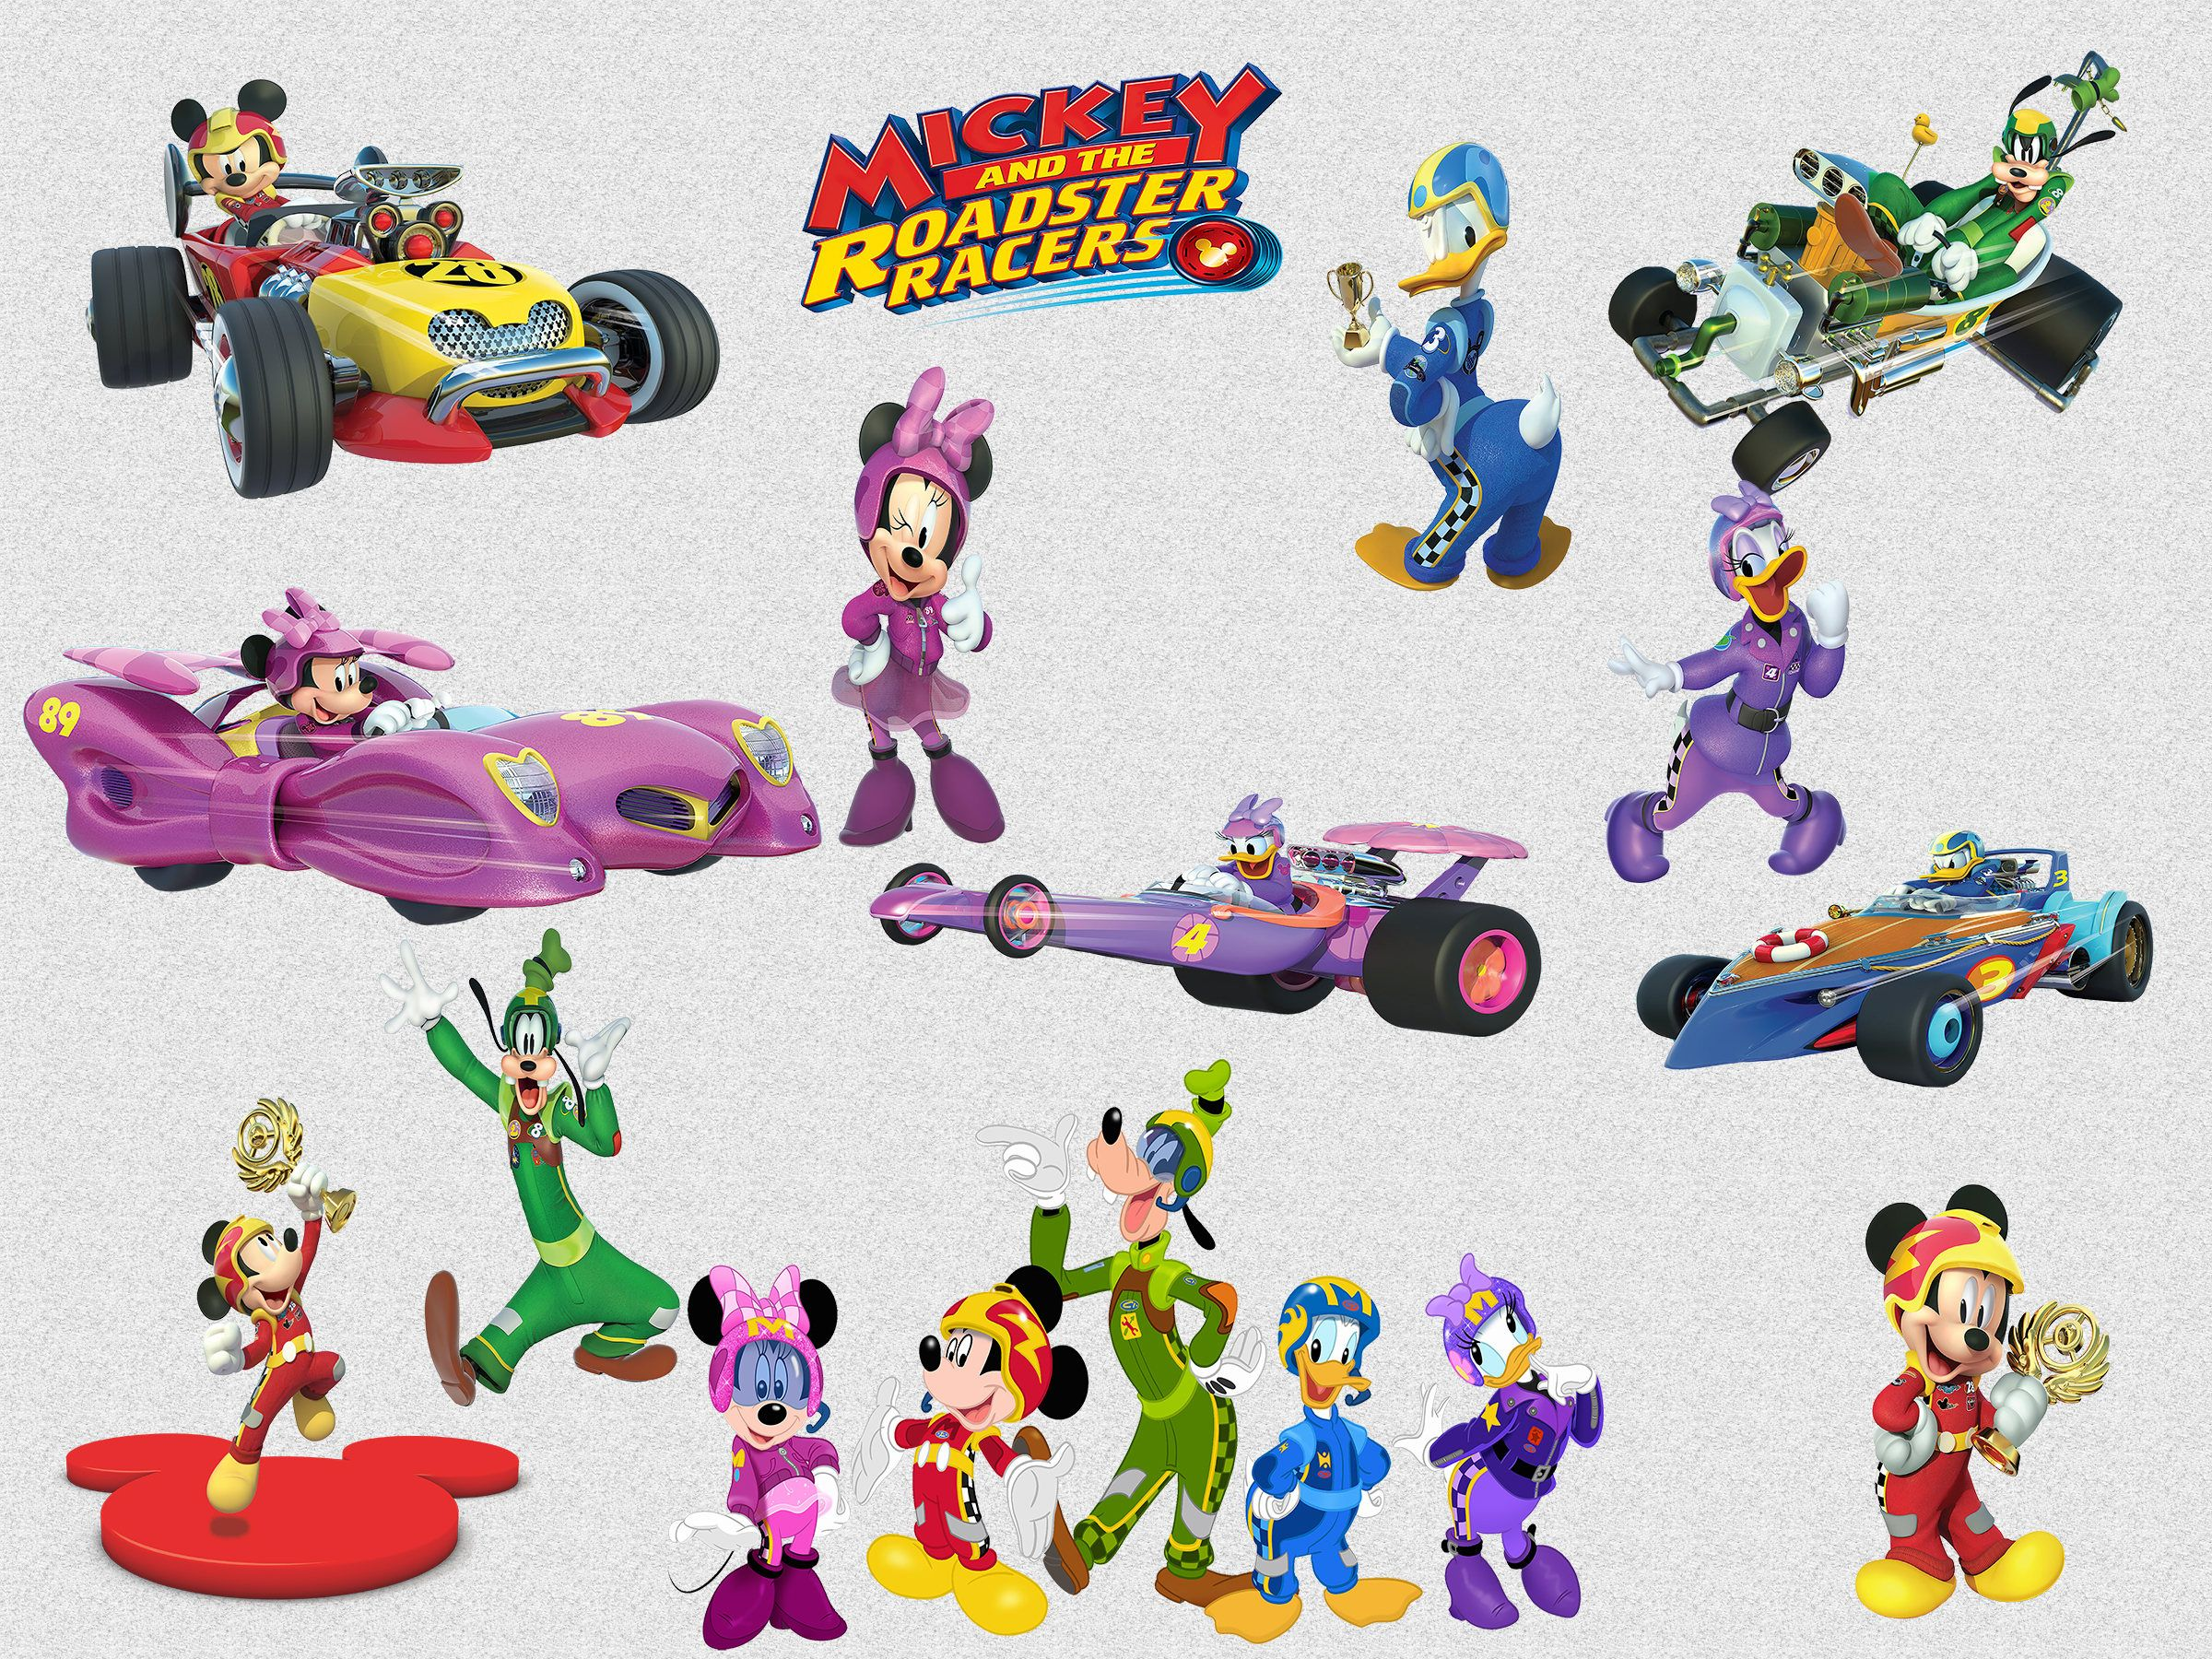 Roadster clipart banner library stock 26 Mickey and the Roadster Racers Clipart, 300 DPI, PNG ... banner library stock